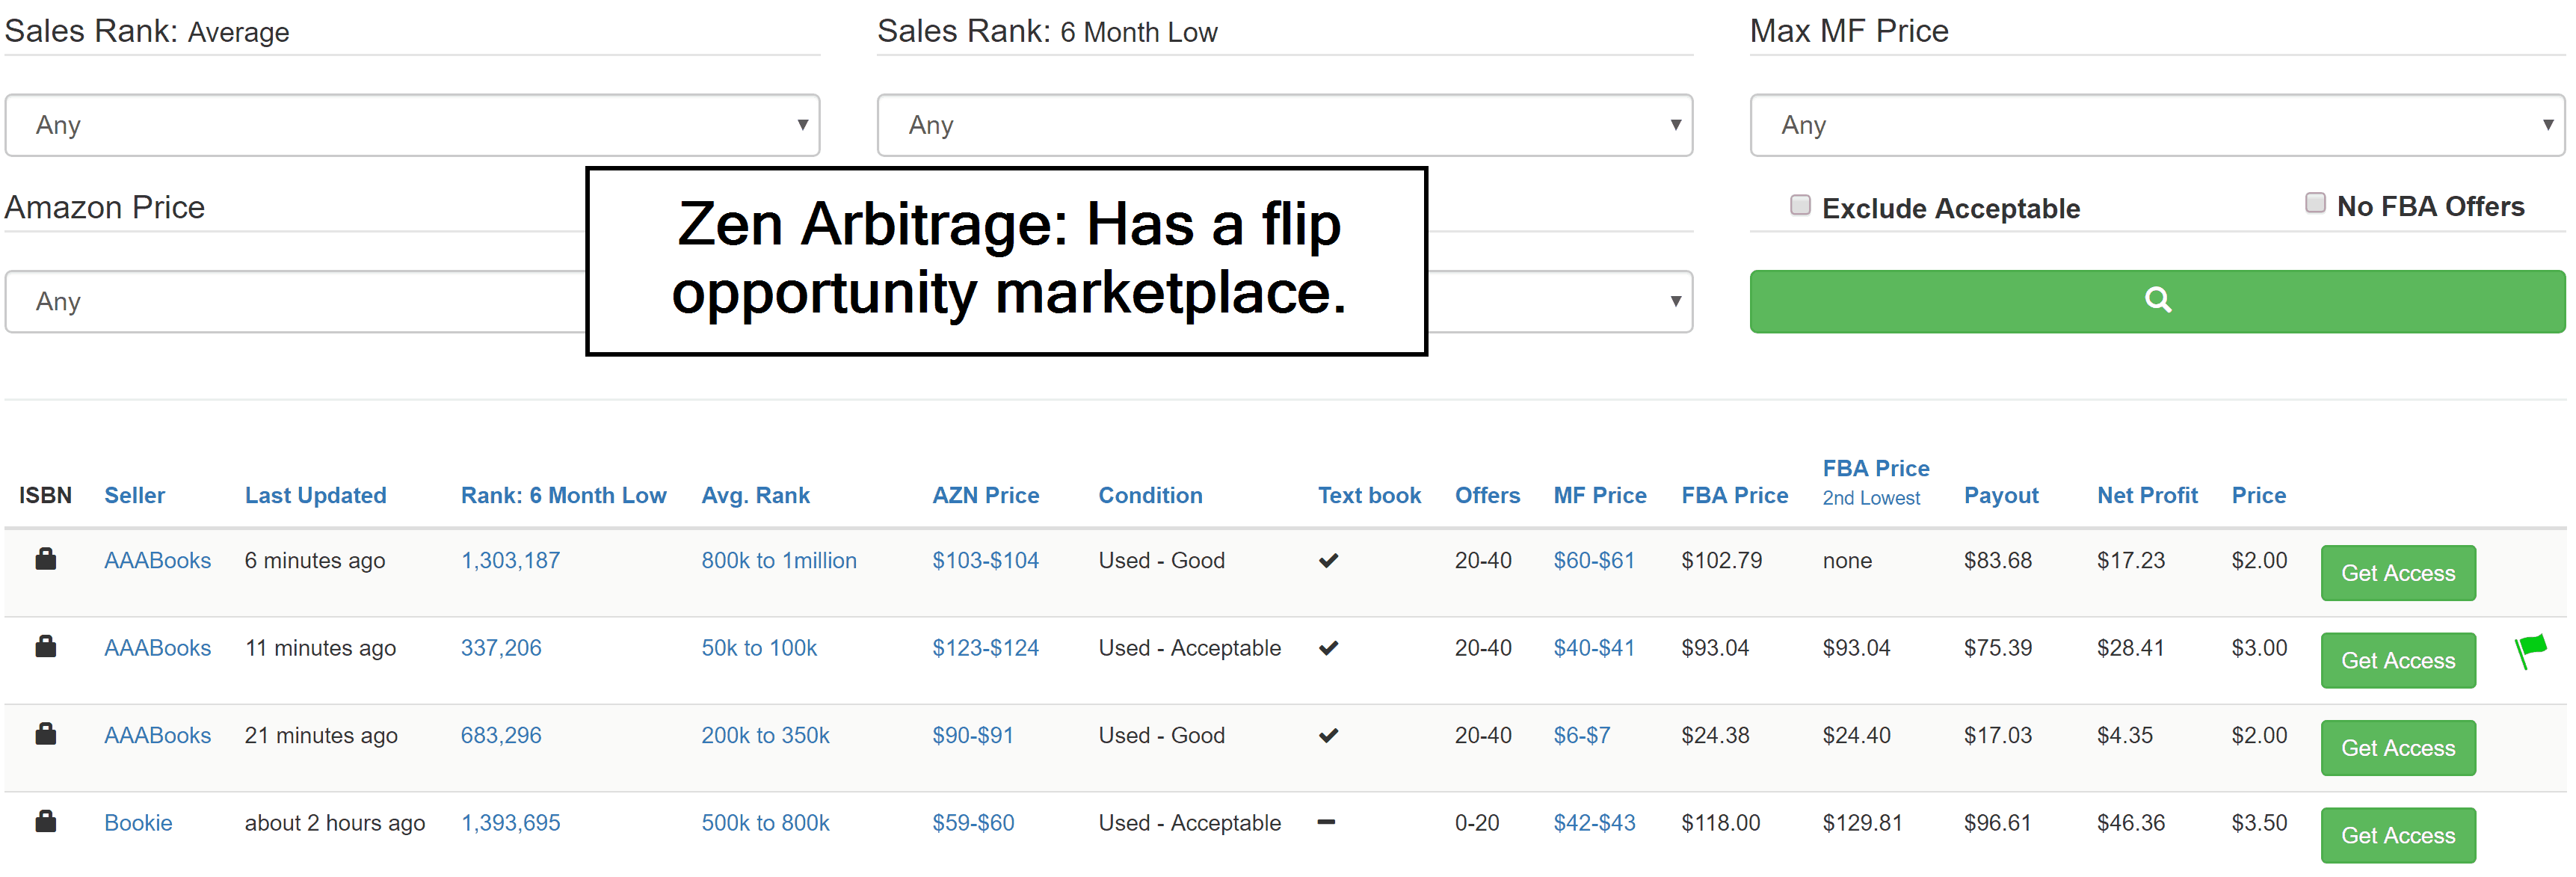 Zen Arbitrage has a flip opportunity marketplace